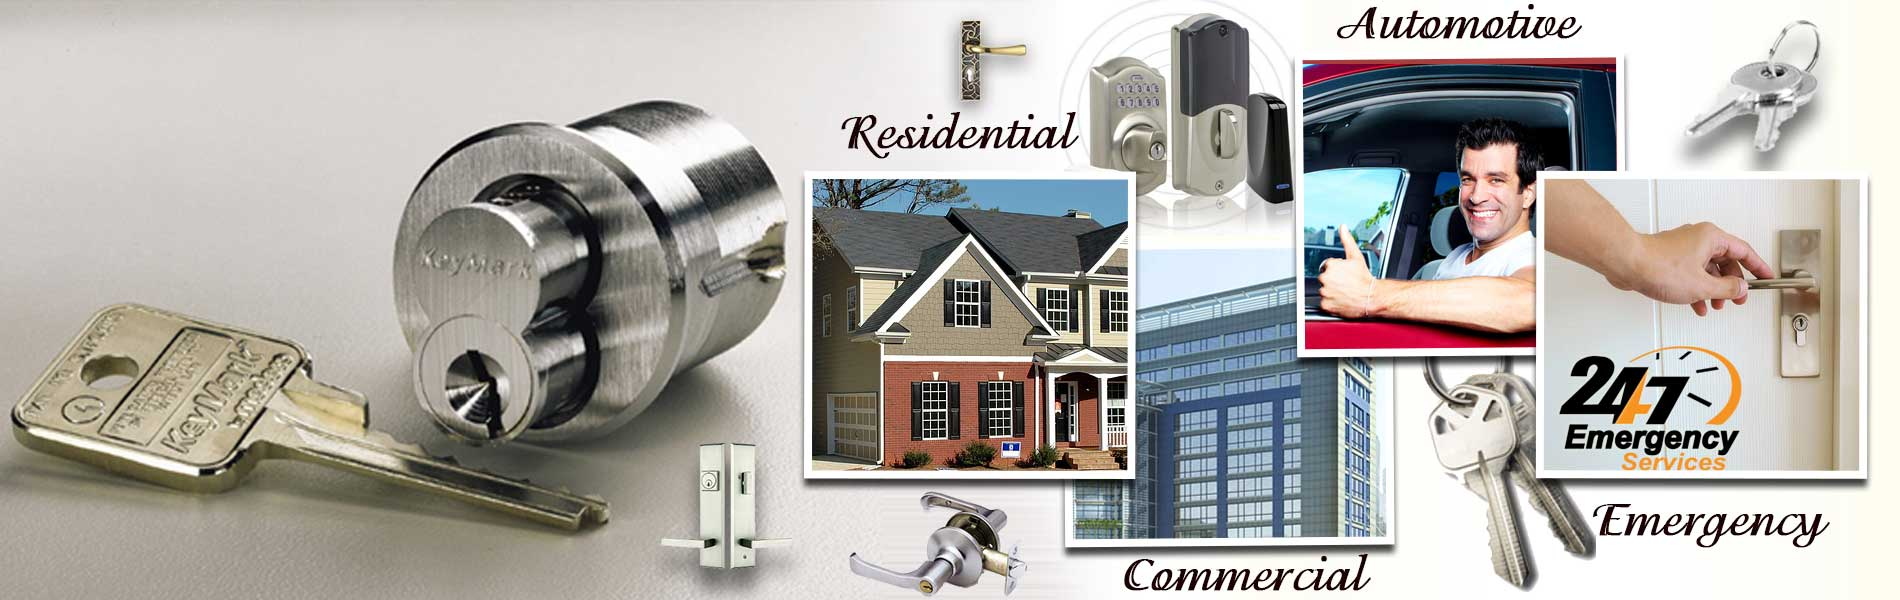 Town Center Locksmith Shop Fort Myers, FL 239-984-3120